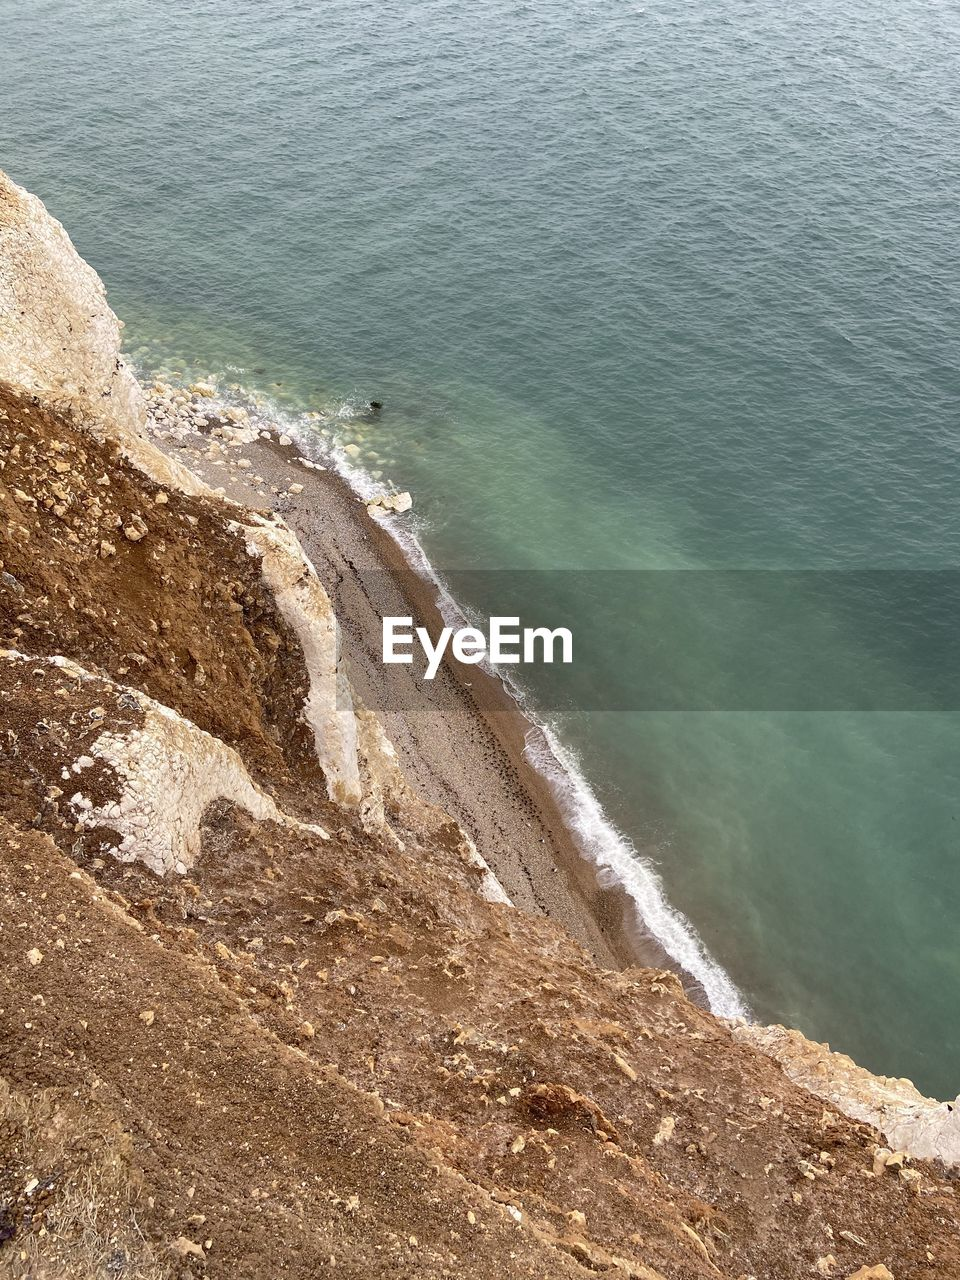 HIGH ANGLE VIEW OF WAVES ON BEACH